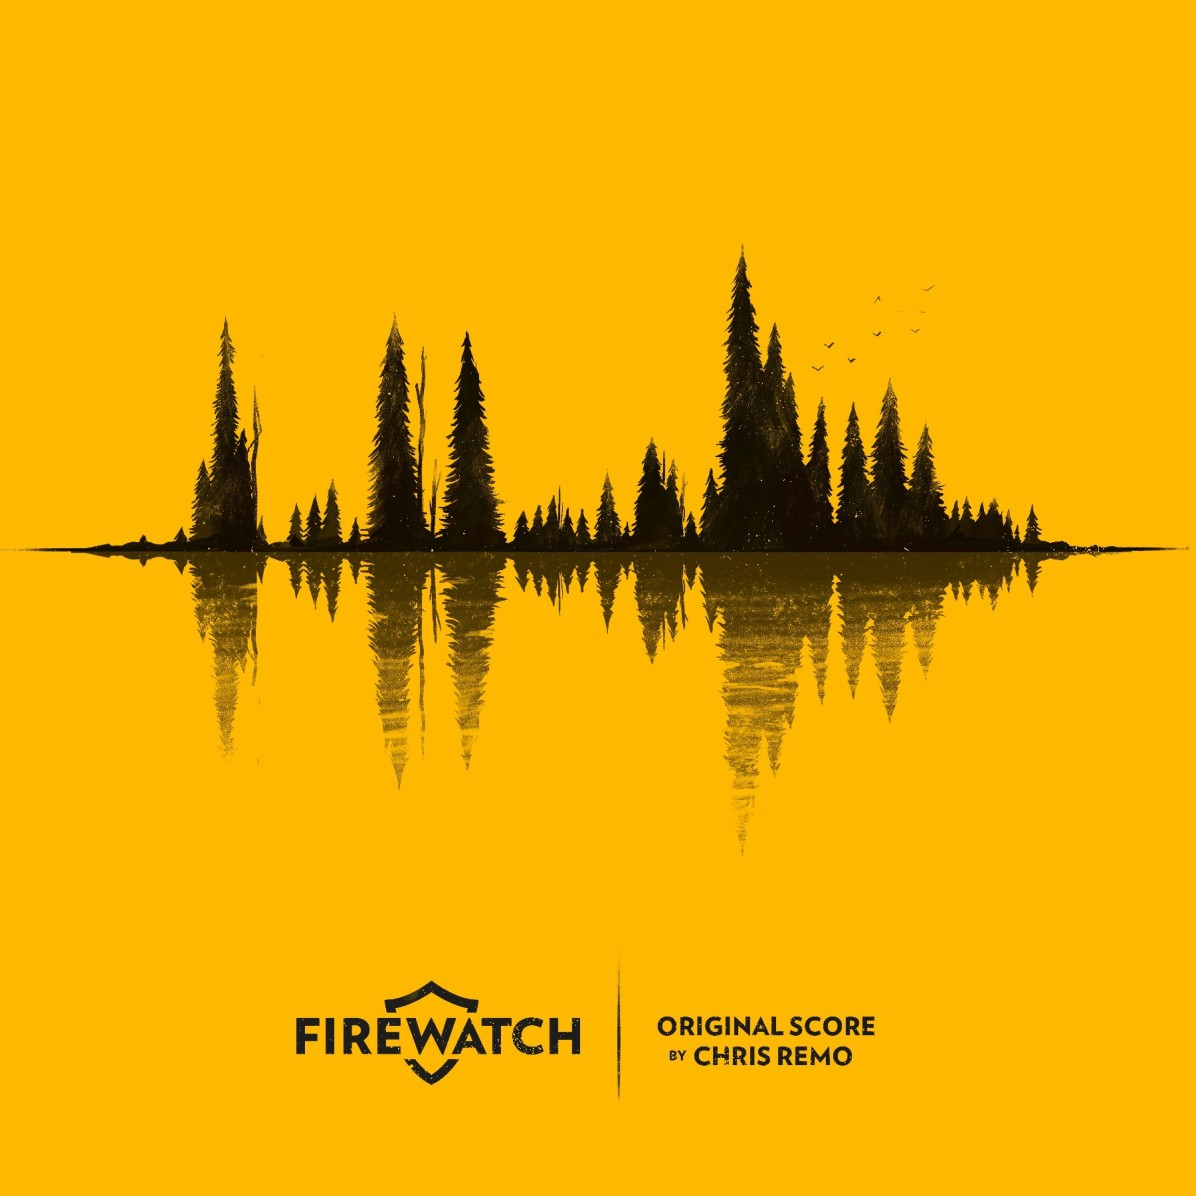 #1: Firewatch (Original)